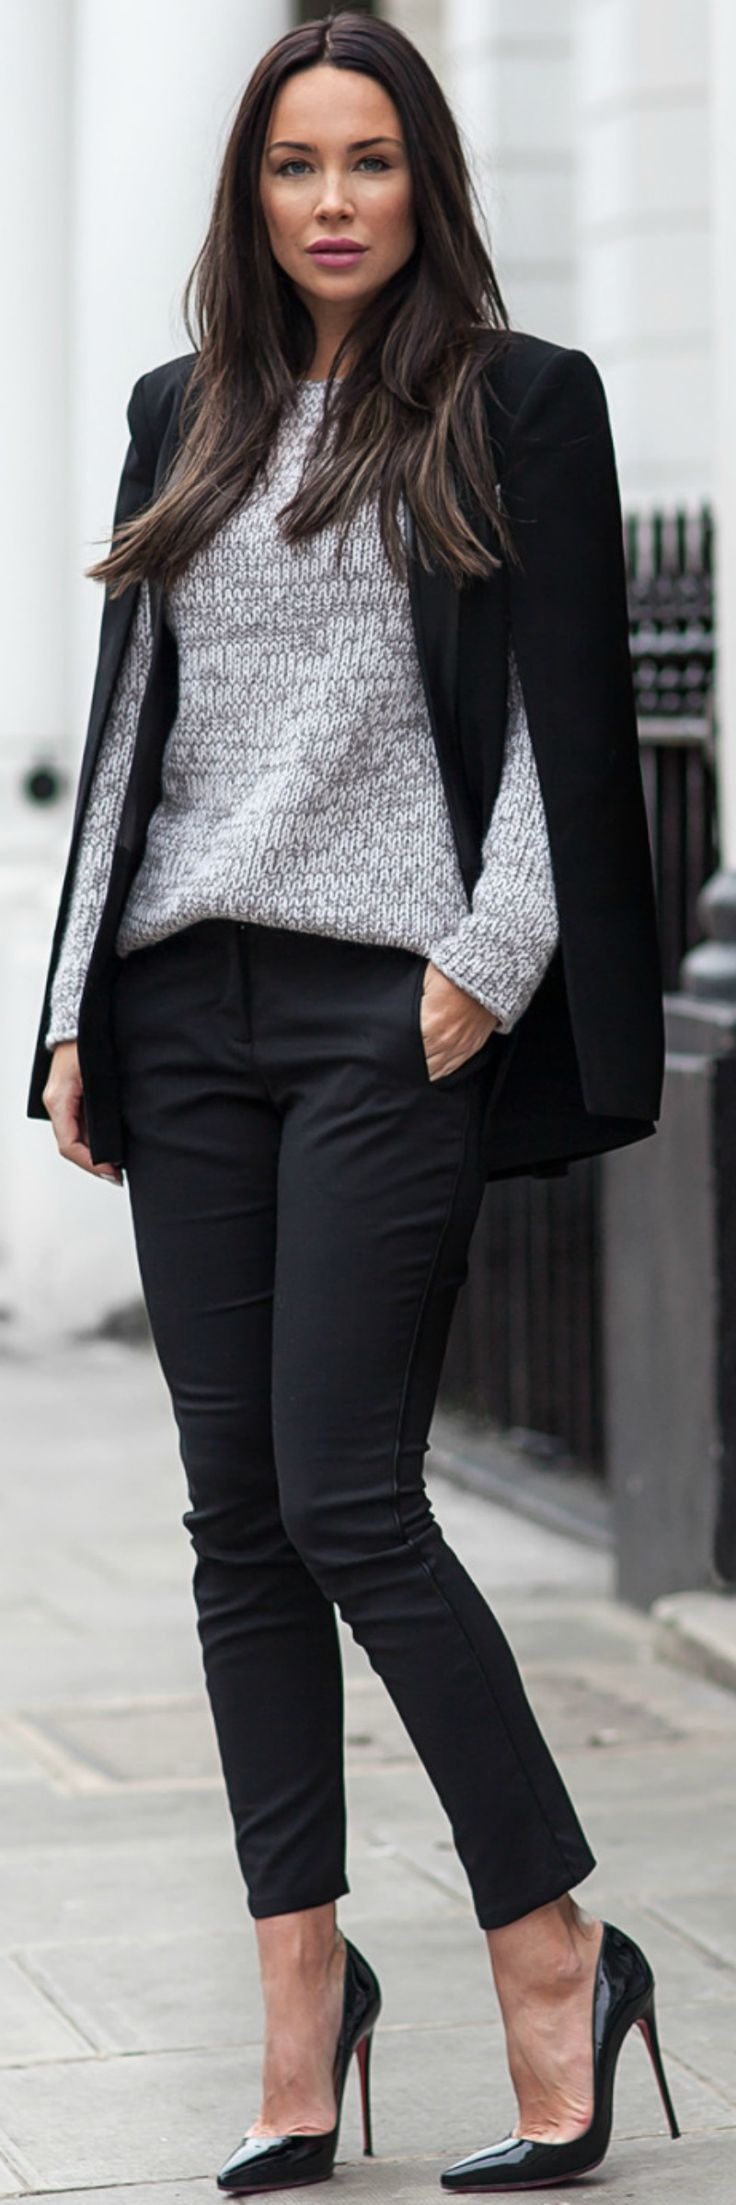 17 Best ideas about Cape Jacket on Pinterest | Black cape, Capes ...